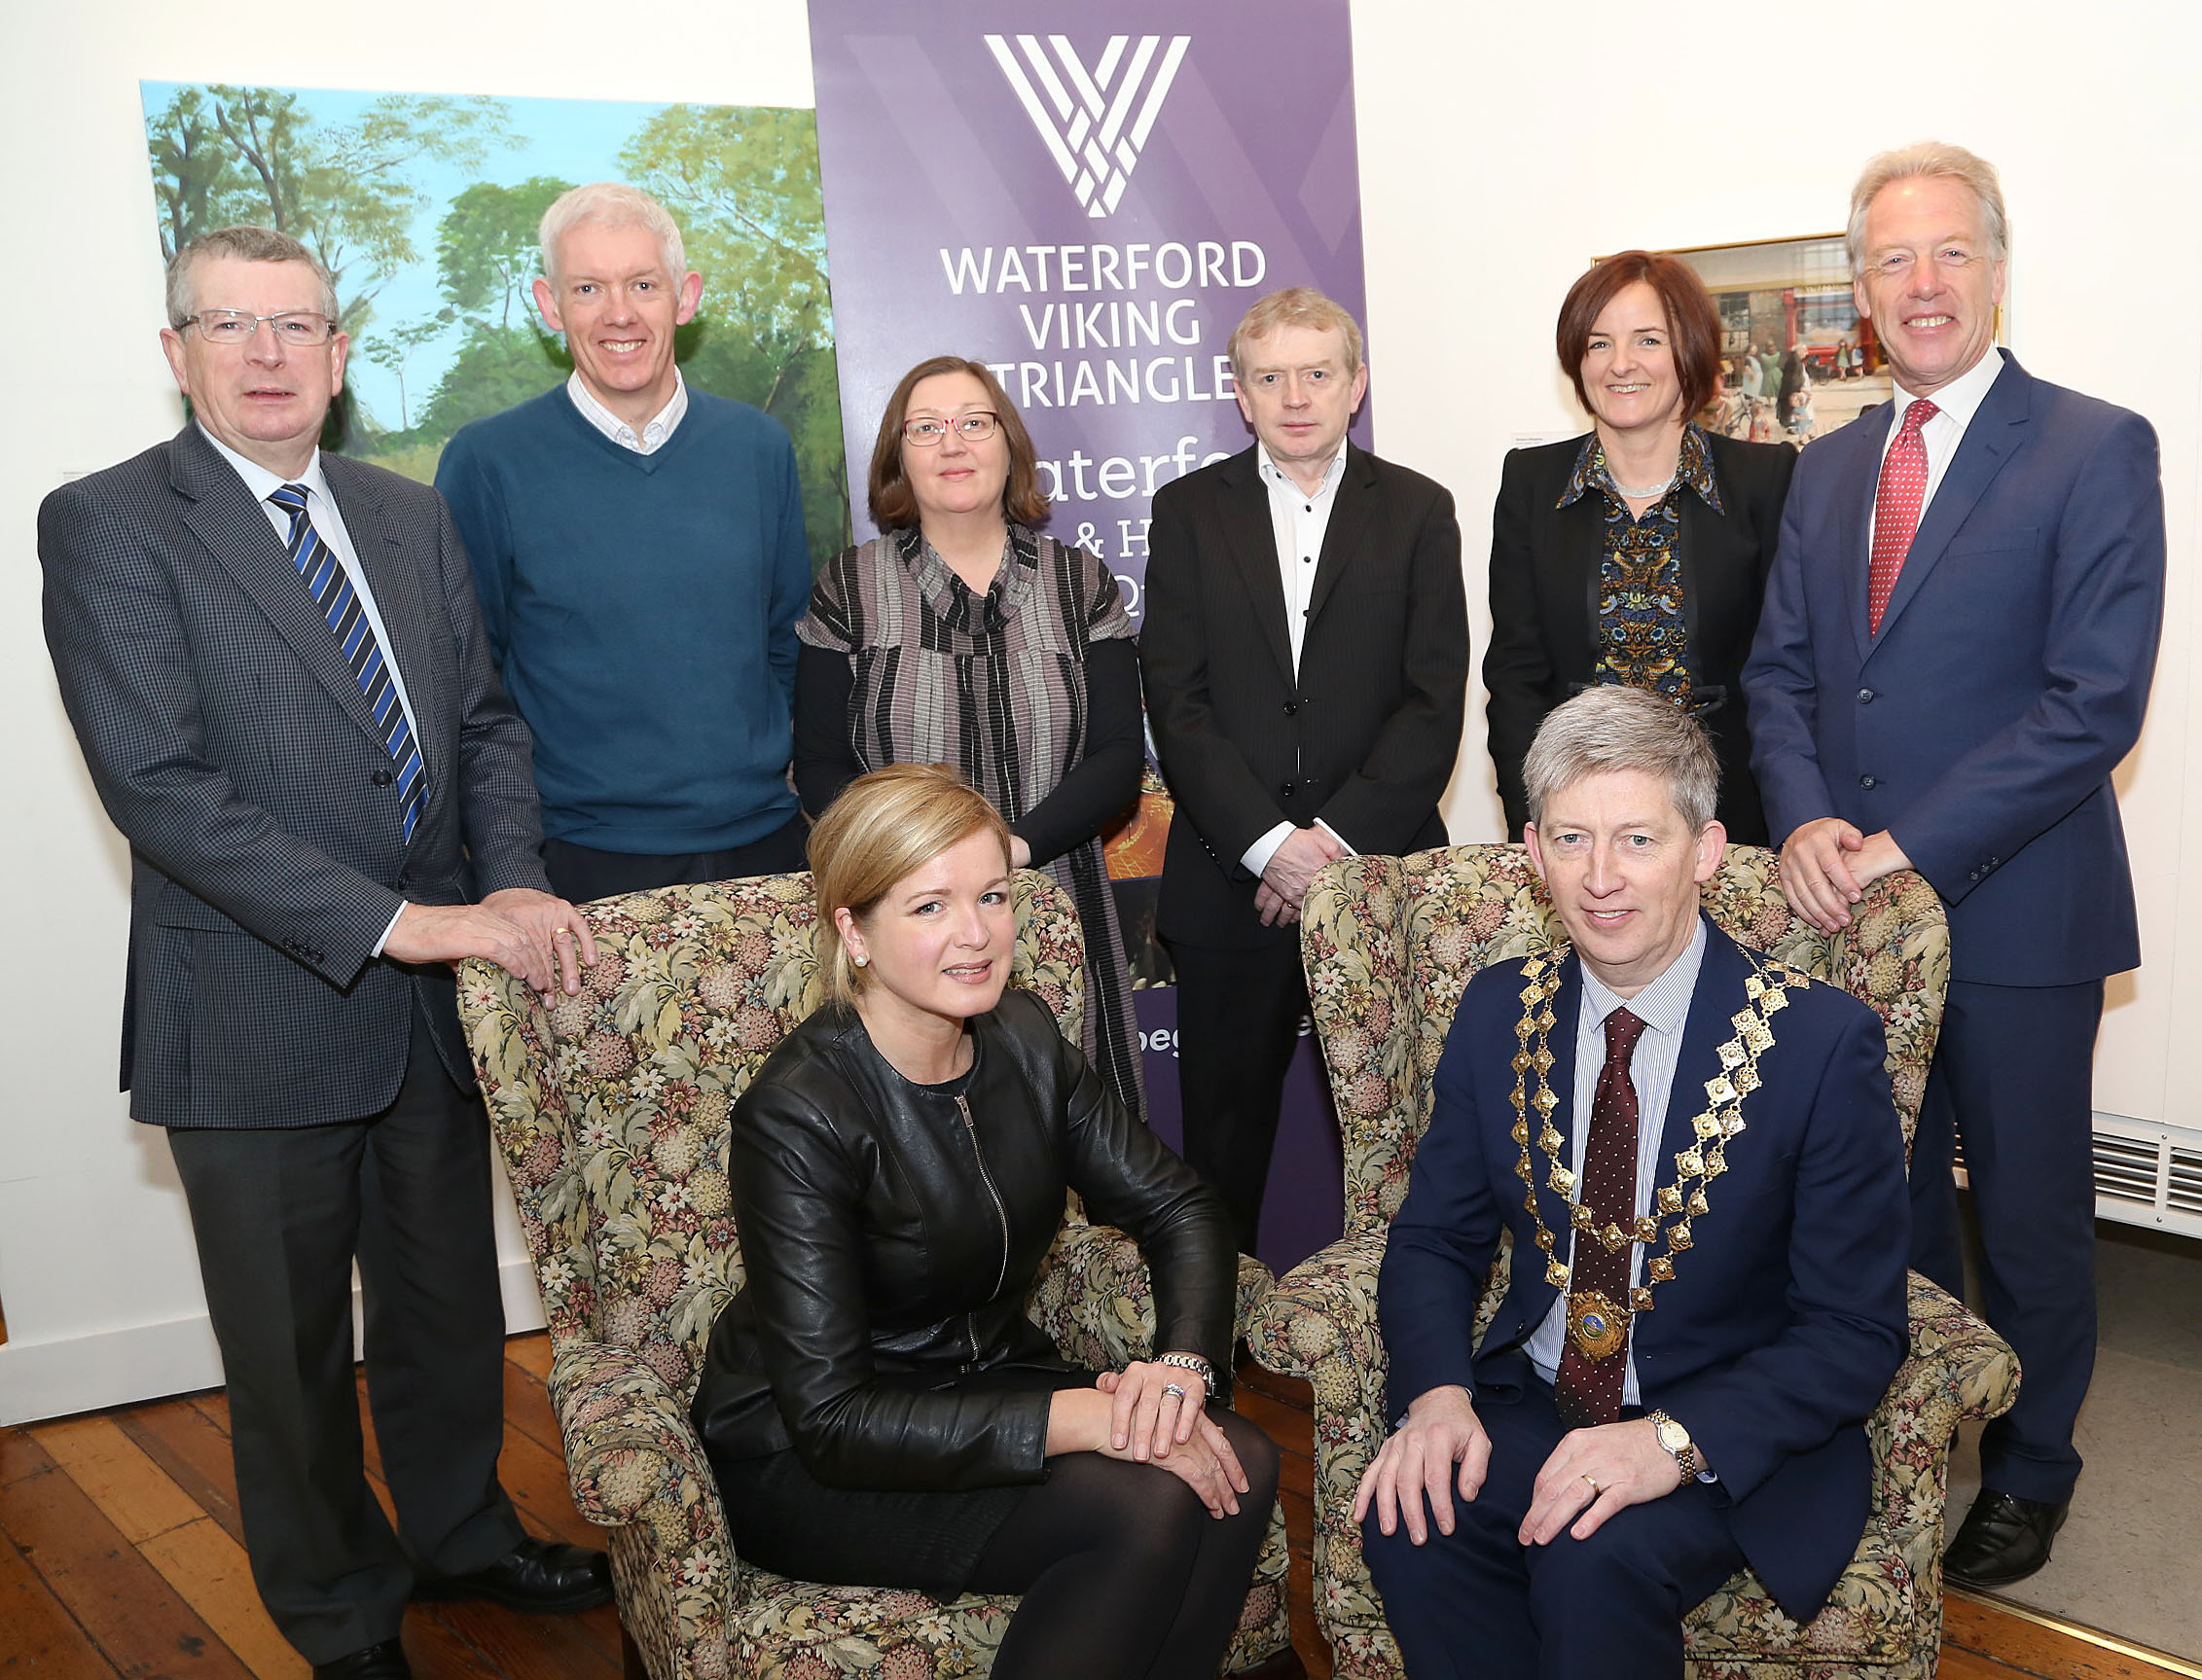 Pictured from eft are Ray Cullen (WIT), Richard Hayes (WIT), Lynn Cahill, Bill Duggan (Waterford City & CountyCouncil), Anne Marie Lally (WIT), Nick Donnelly (Waterford Chamber CEO),  Front Fiona McHardy (WVT) & Micheal O'Dwyer Chamber President